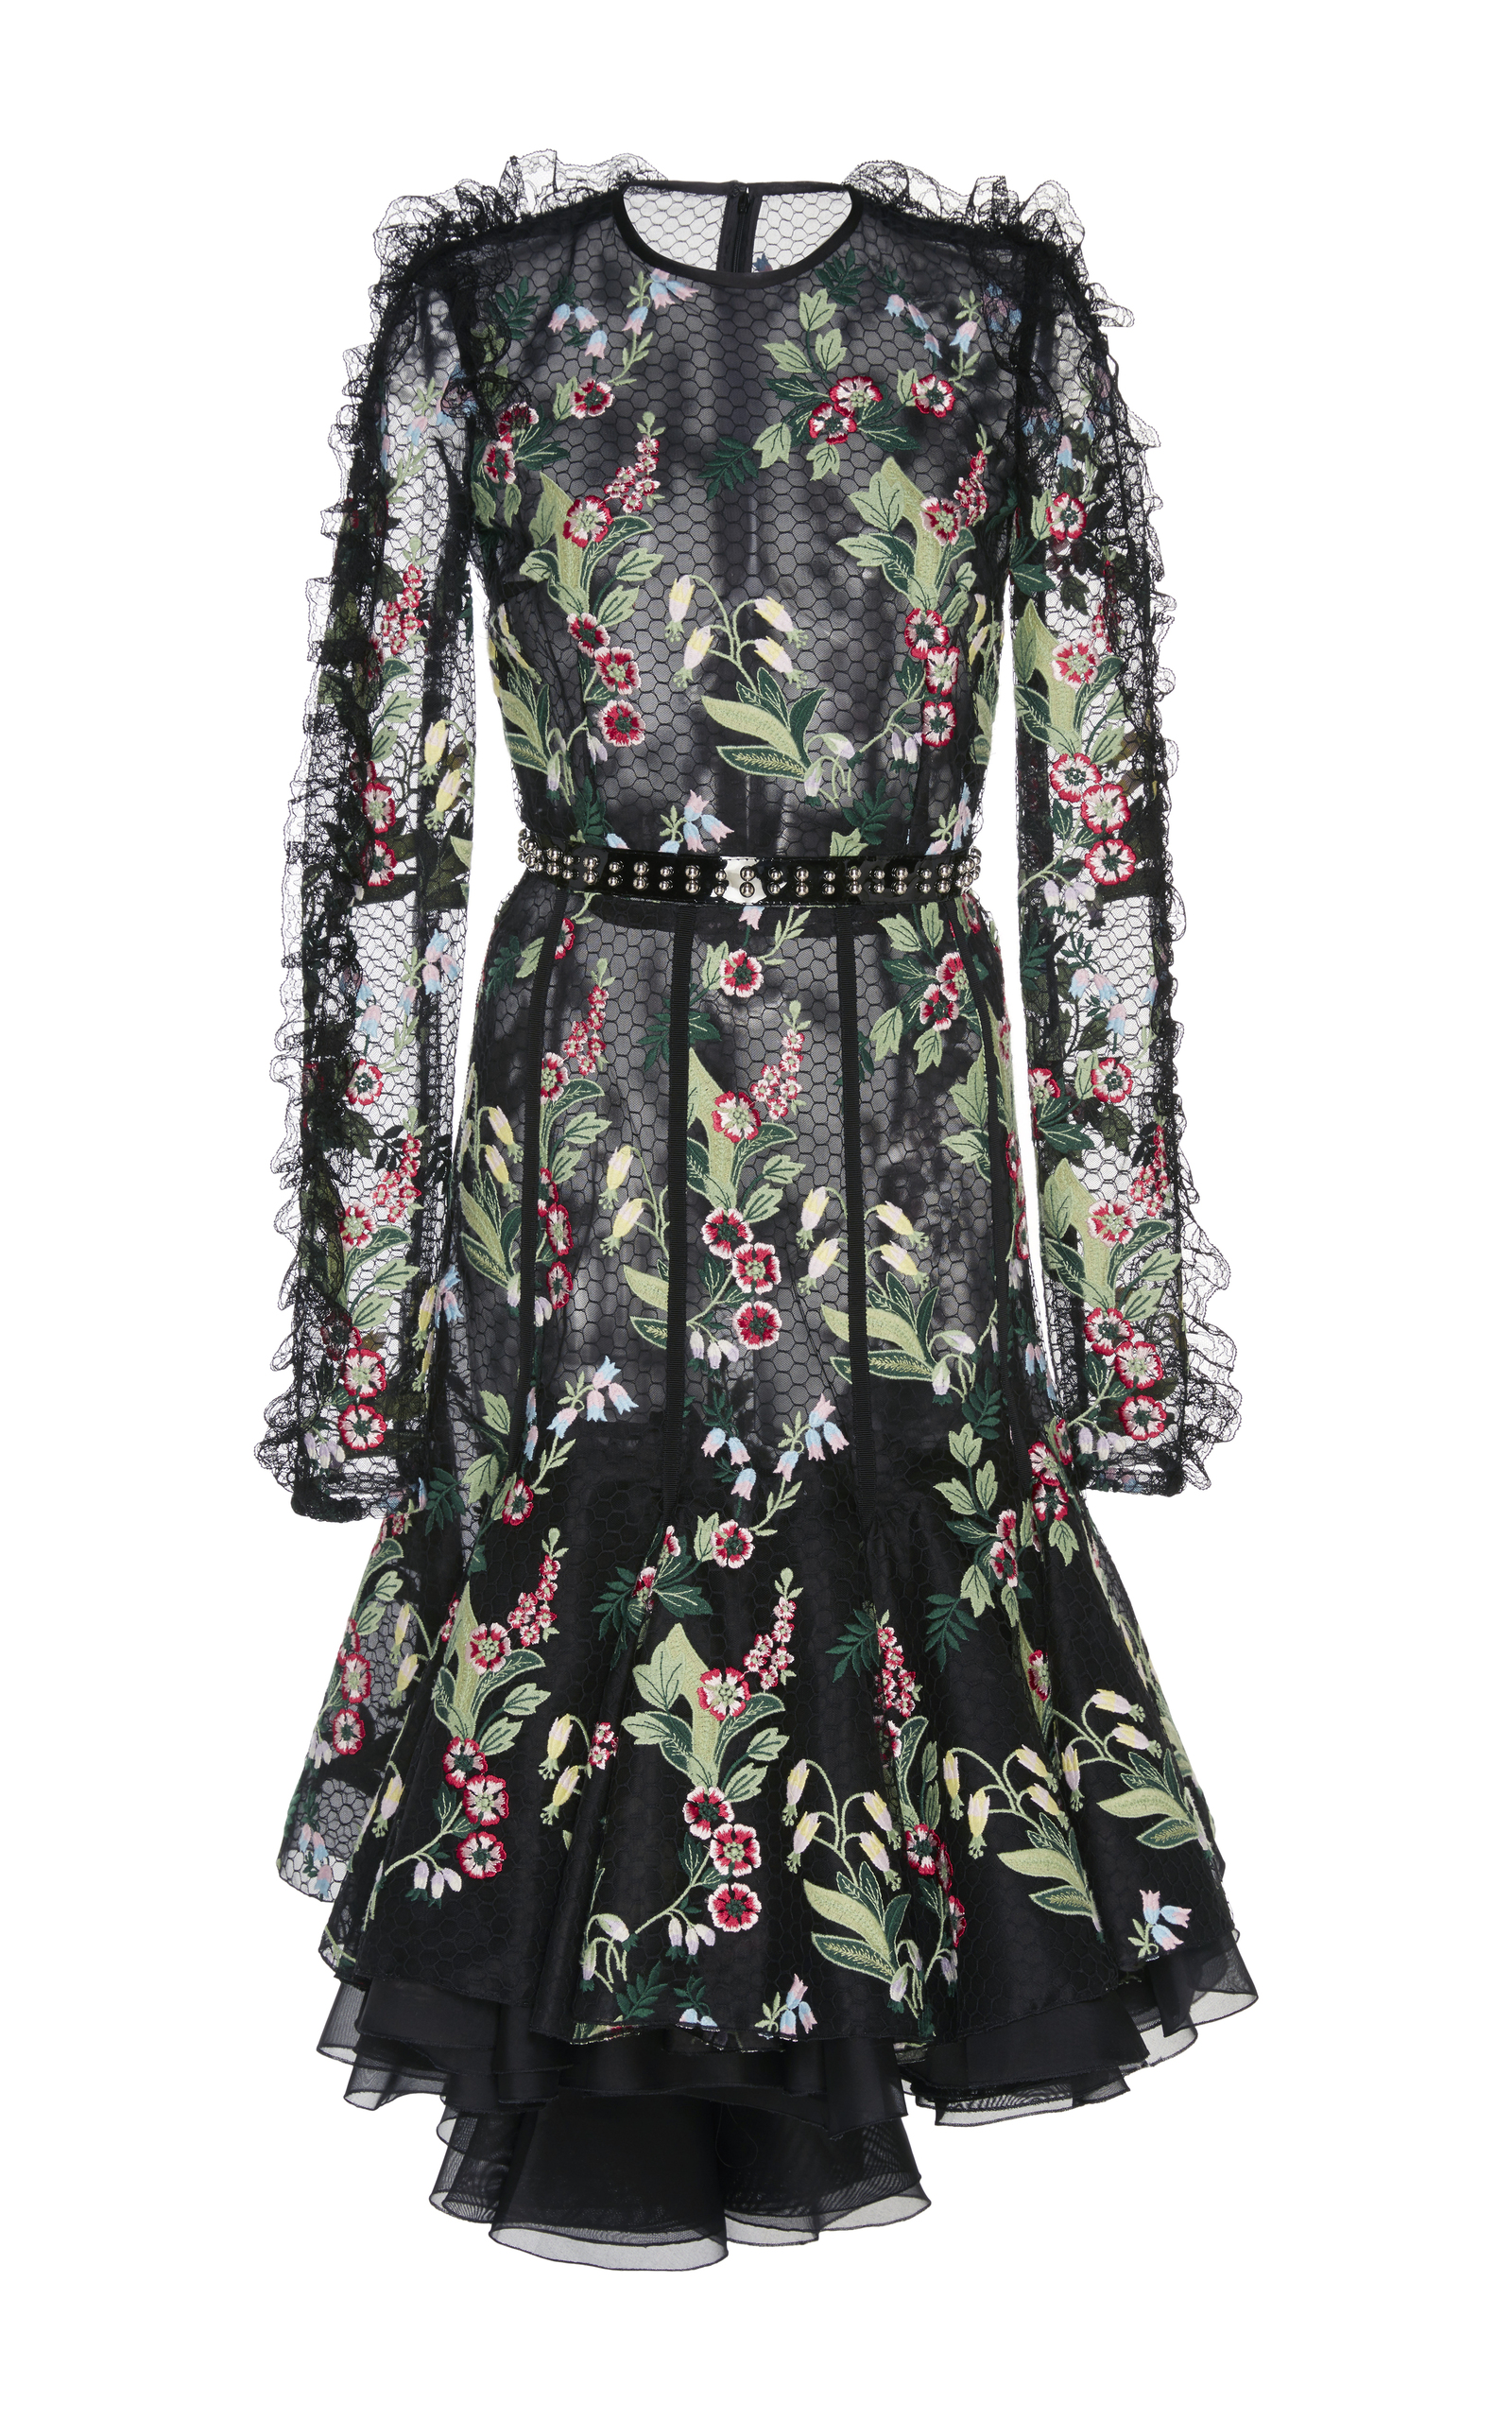 Floral Embroidered Lace Dress By Giambattista Valli Moda